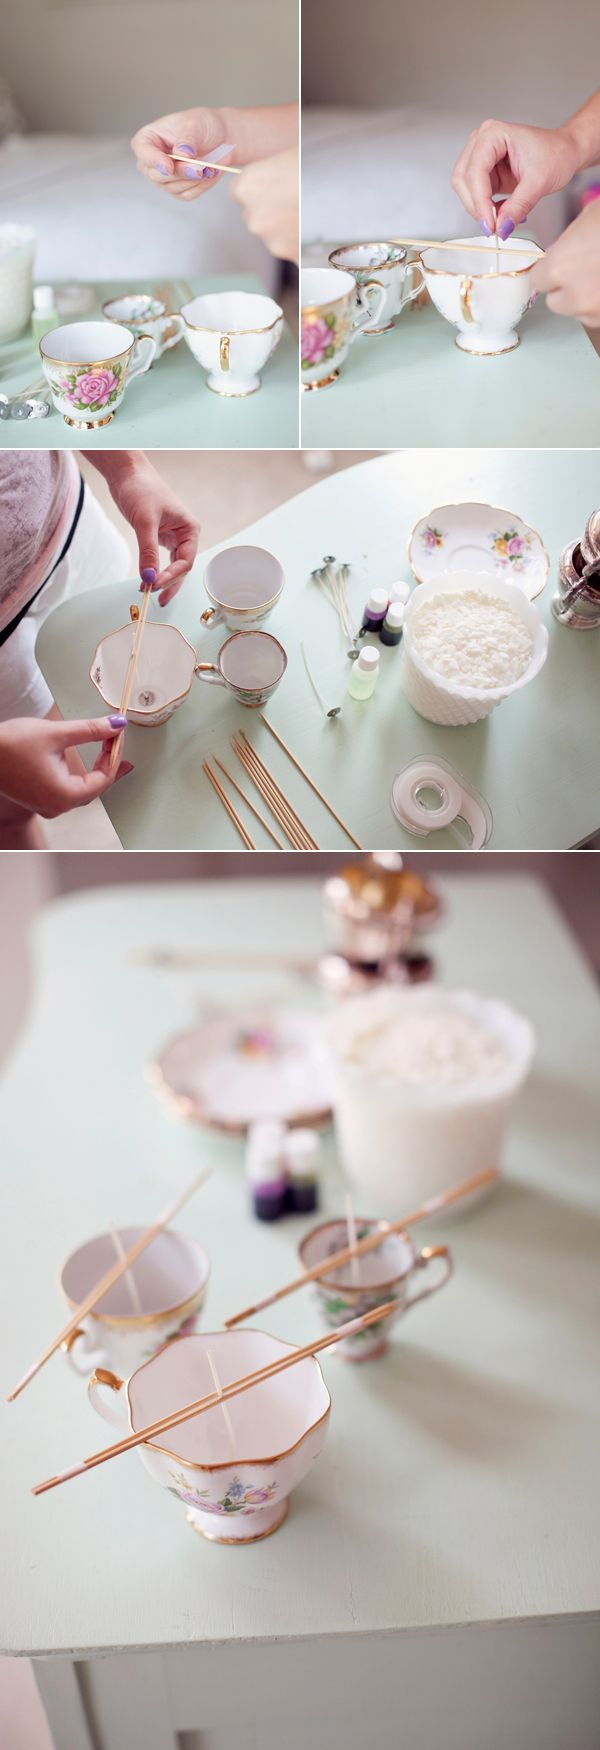 #DIY Vintage Teacup Candles – VERY easy and would be a cute gift/party favor.